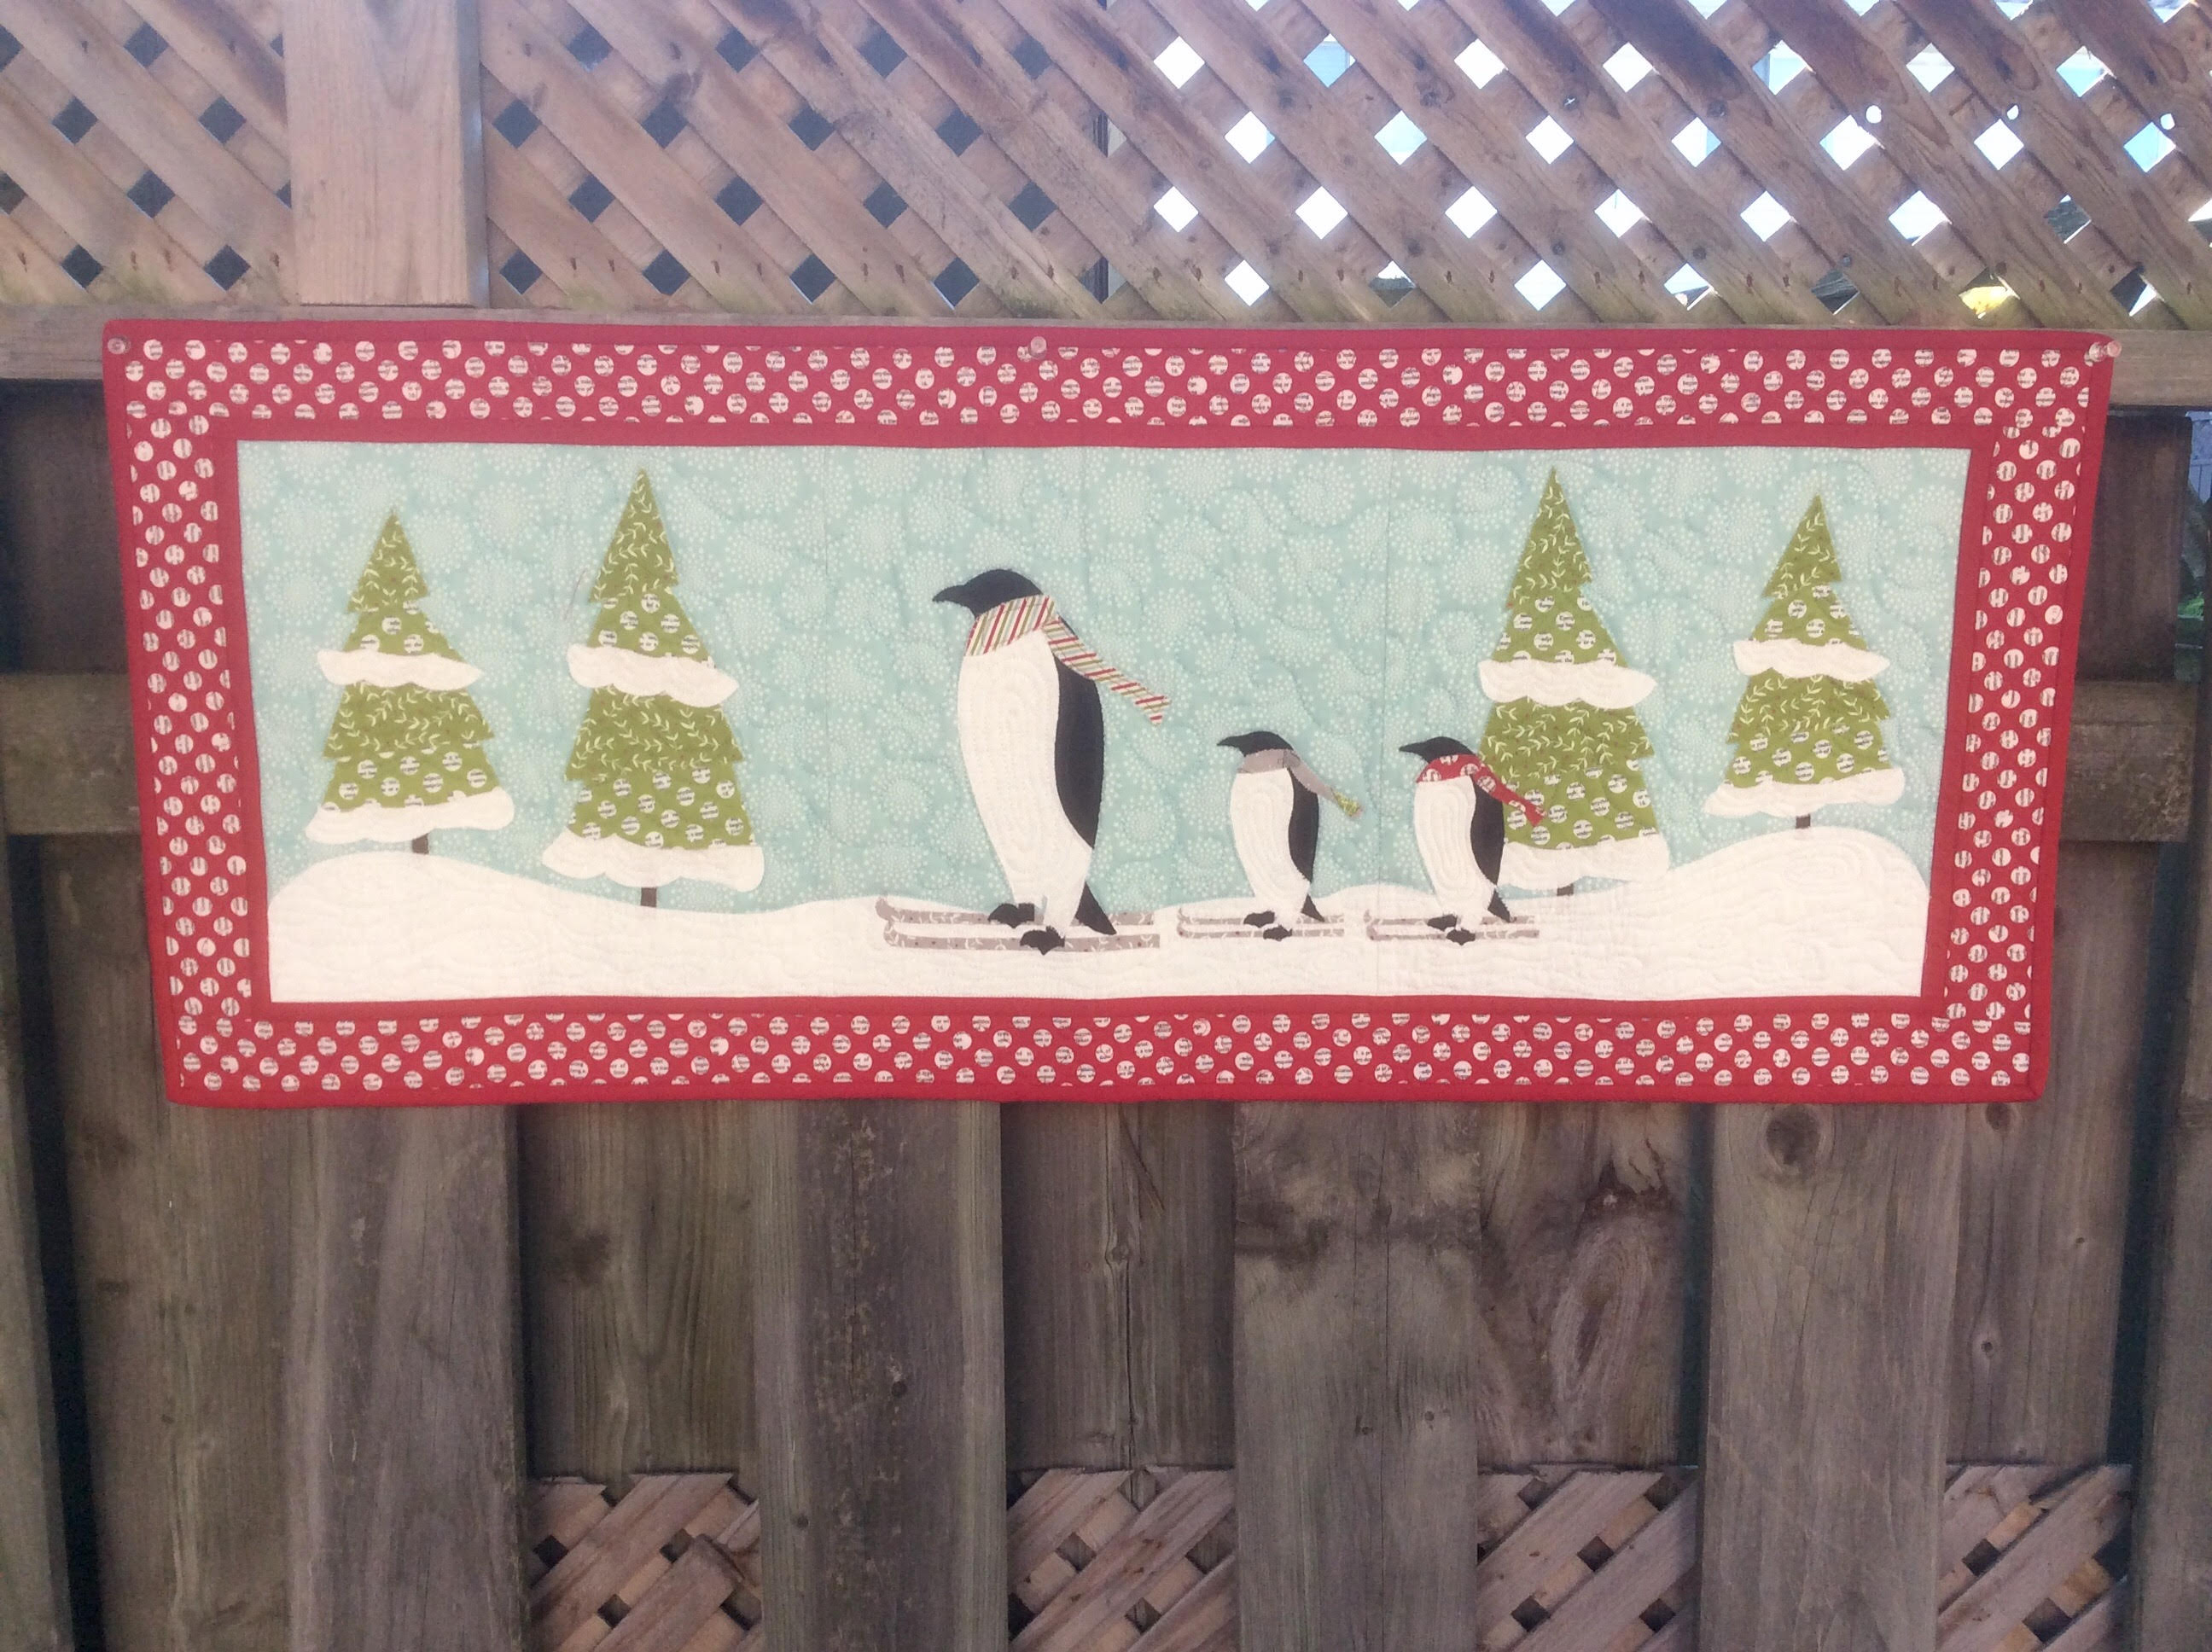 Penguins on Ice Christmas Wallhanging